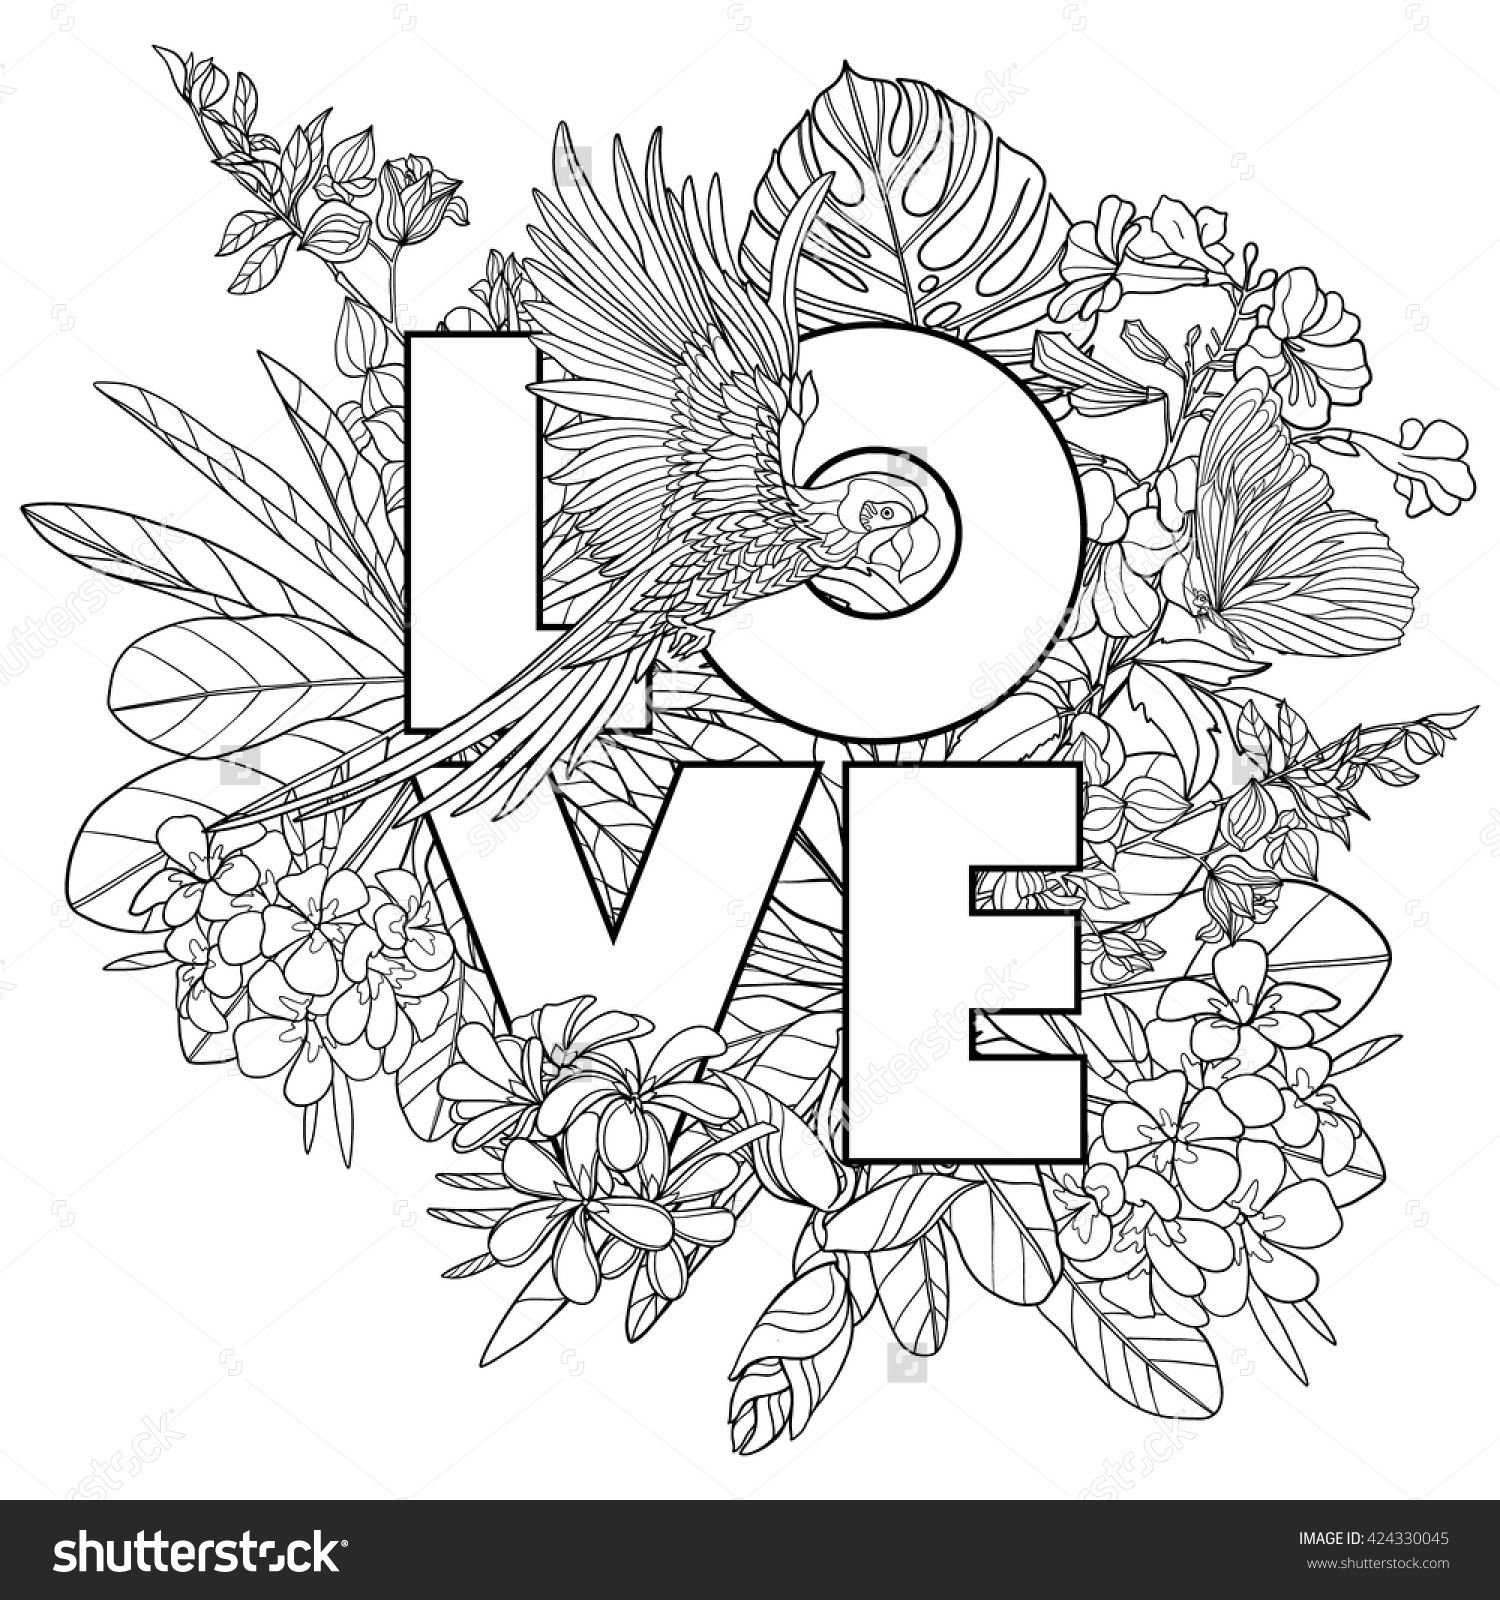 coloring page with word love and tropical birds and plants outline vector illustration buy this stock vector on shutterstock find other images - Tropical Coloring Pages